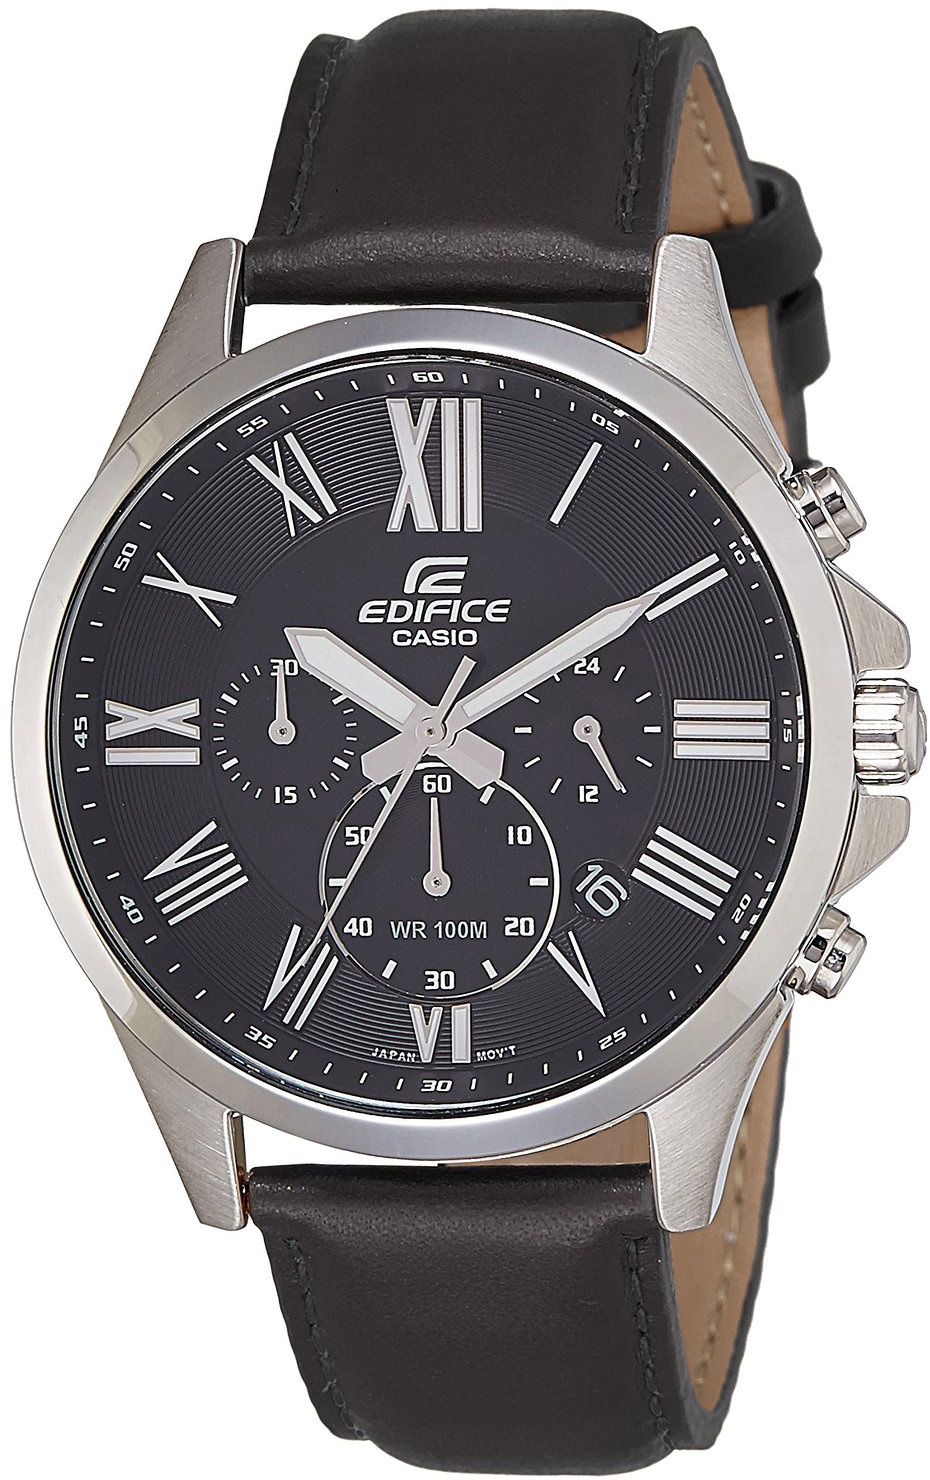 Casio Edifice EFV-500L-1A casio wave ceptor wv 200de 1a